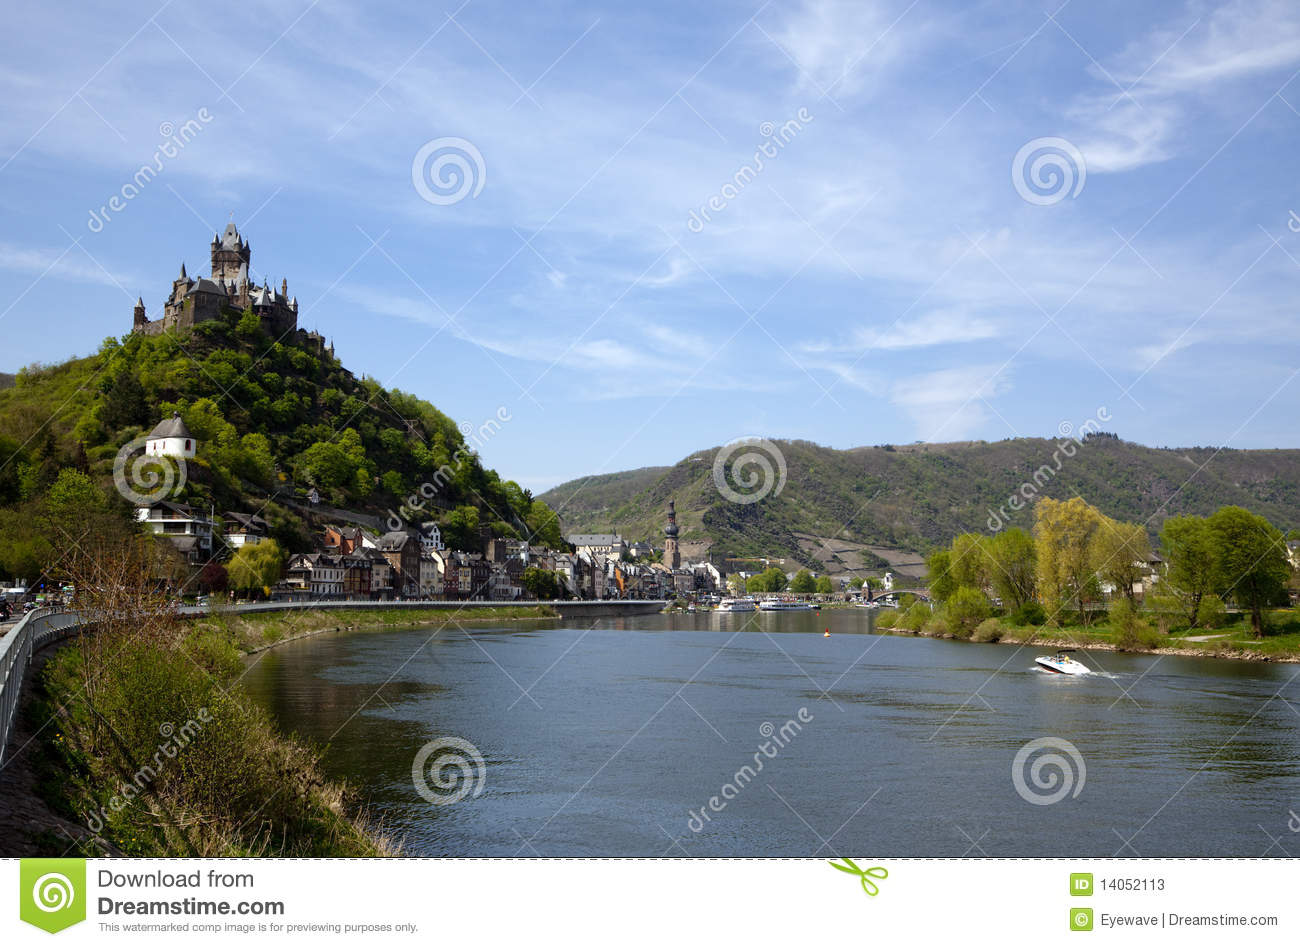 Cochem in the Mosel Valley